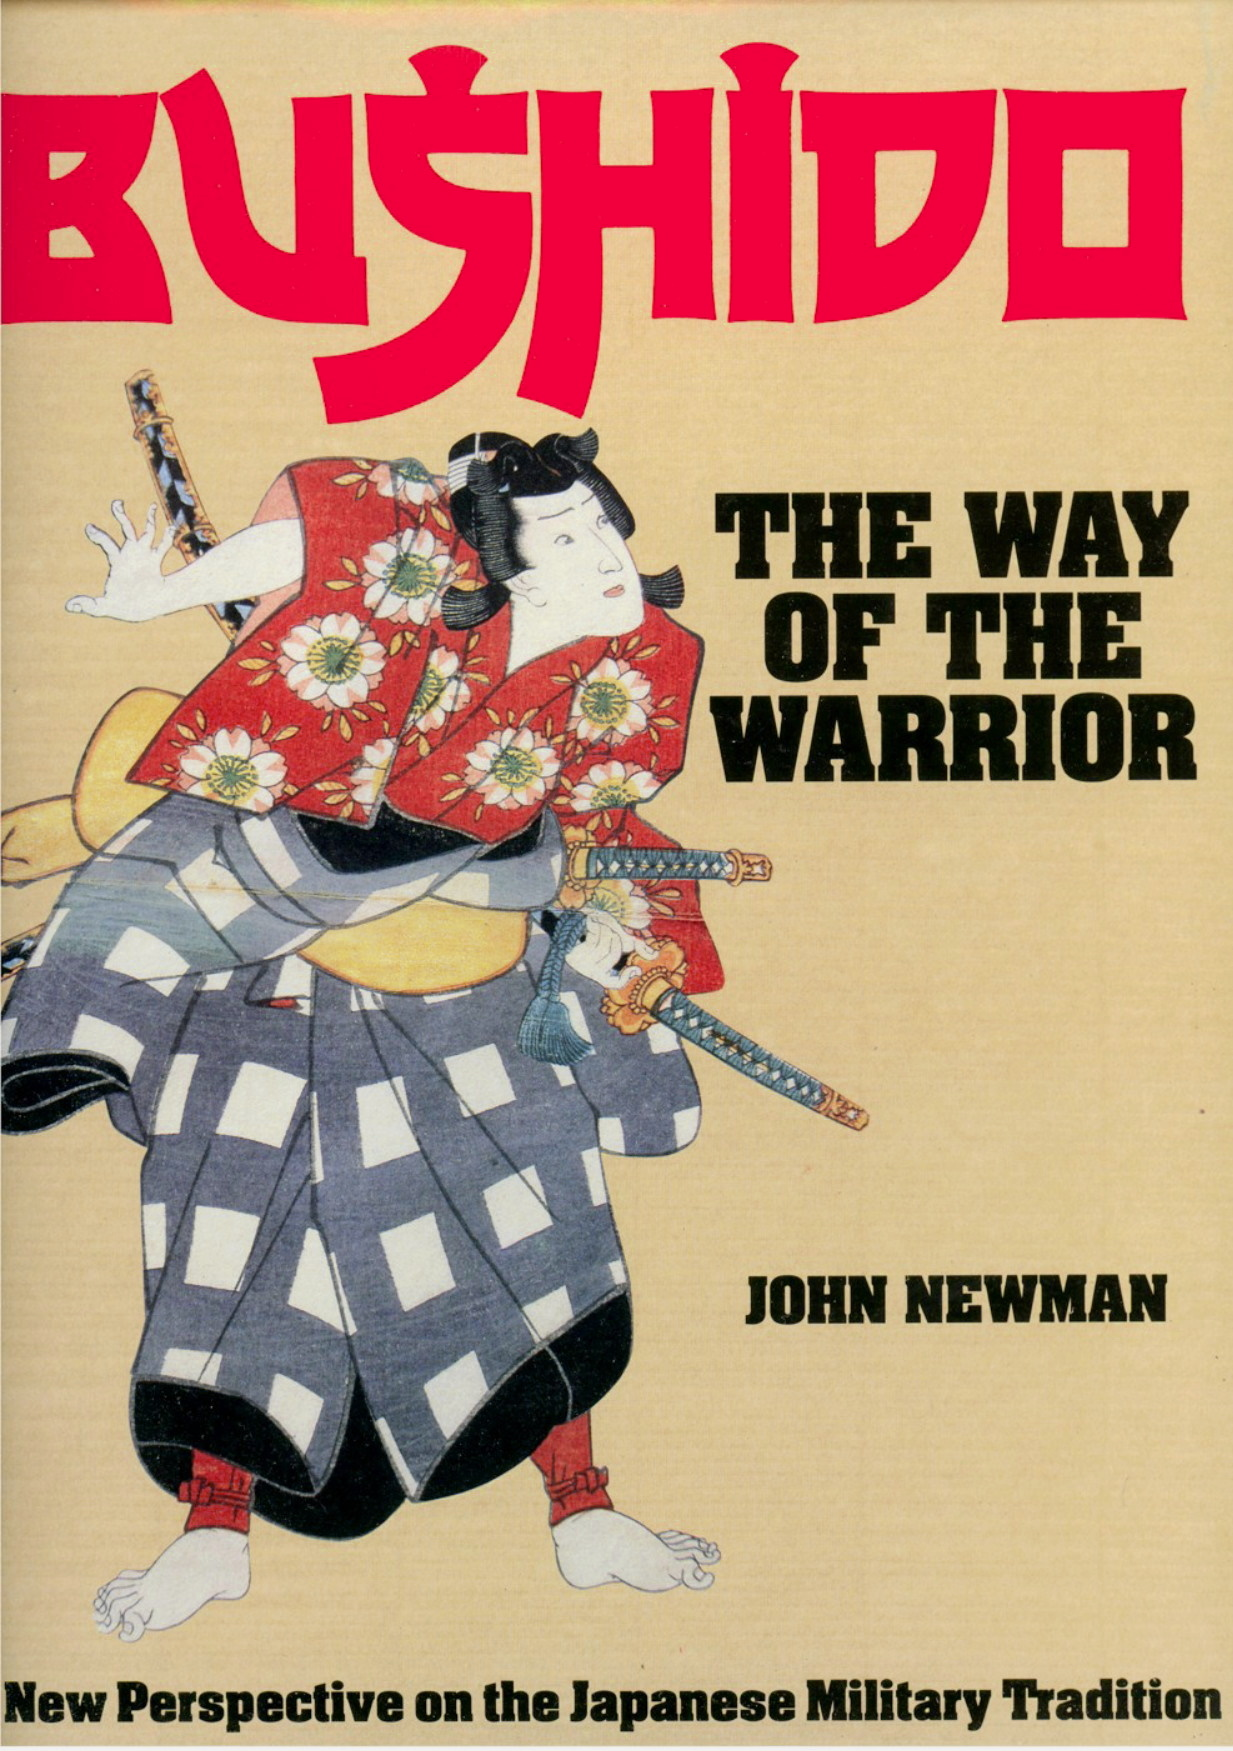 Bushido: The Way of the Warrior by John Newman